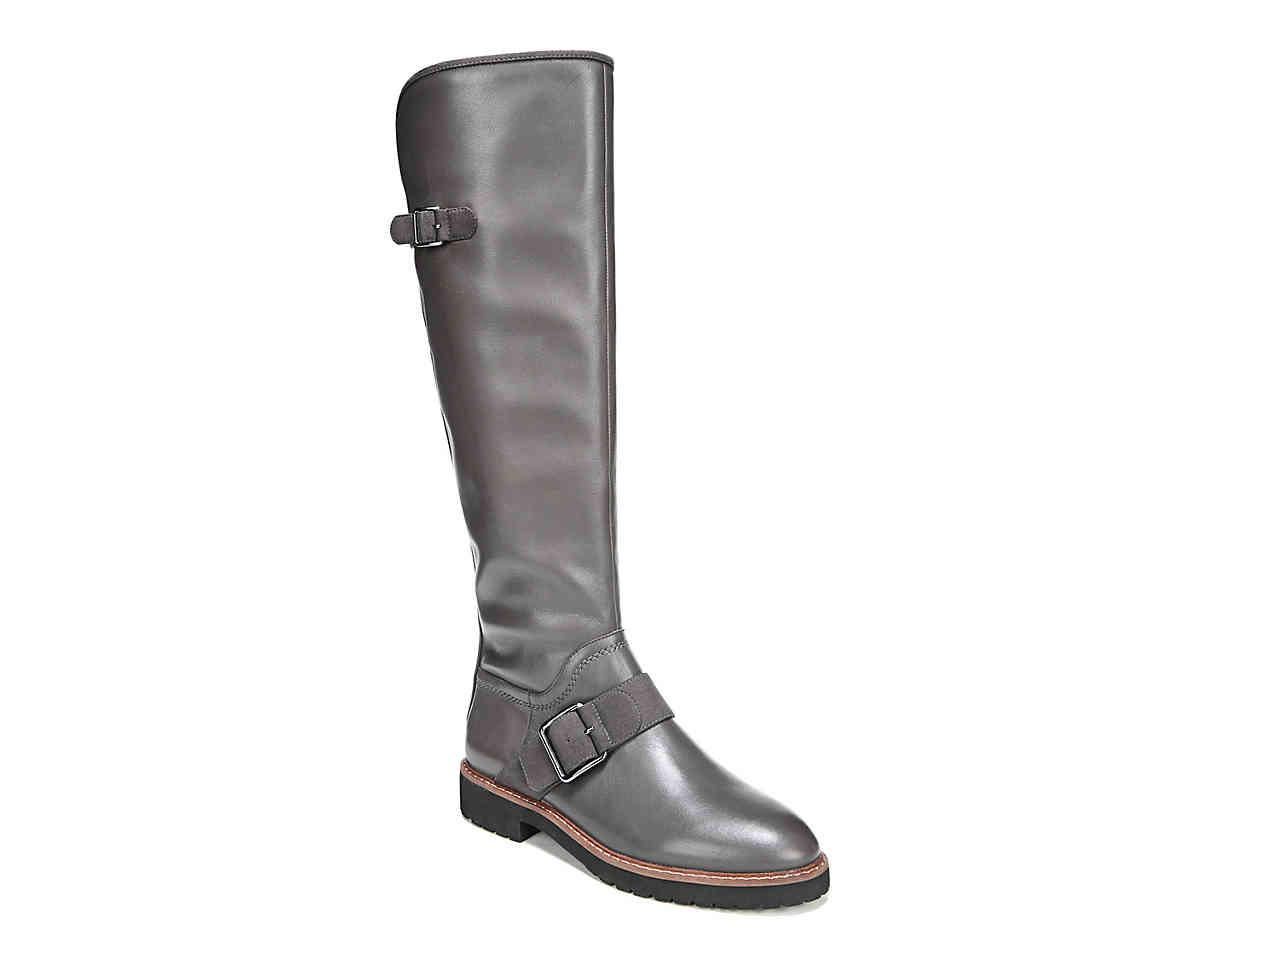 9d353351ec4 Lyst - Franco Sarto Cutler Riding Boot - Save 17%